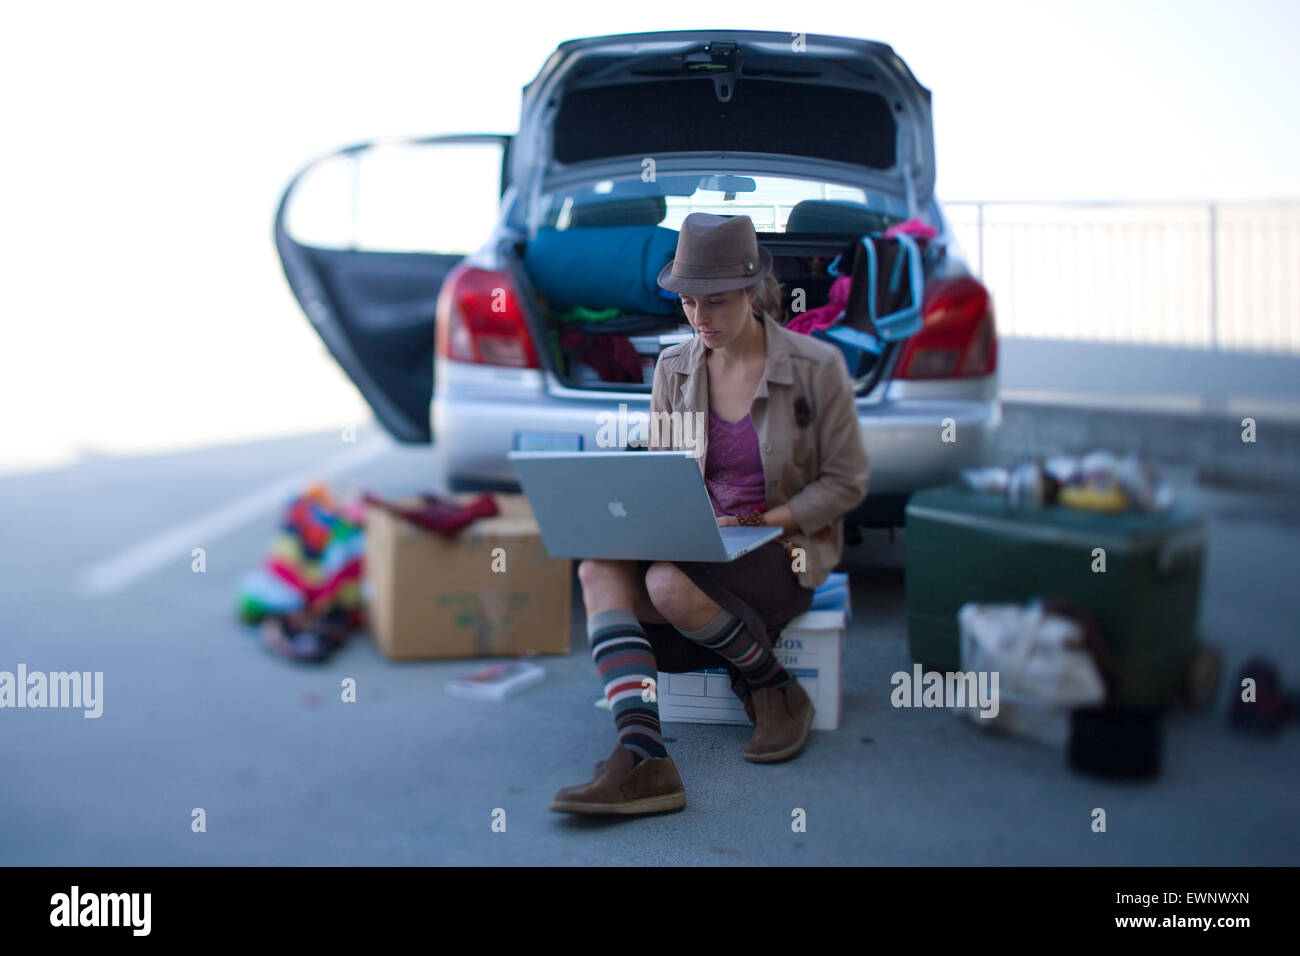 An aspiring actress uses her computer before an audition, while seated amongst her belongings near the trunk of - Stock Image